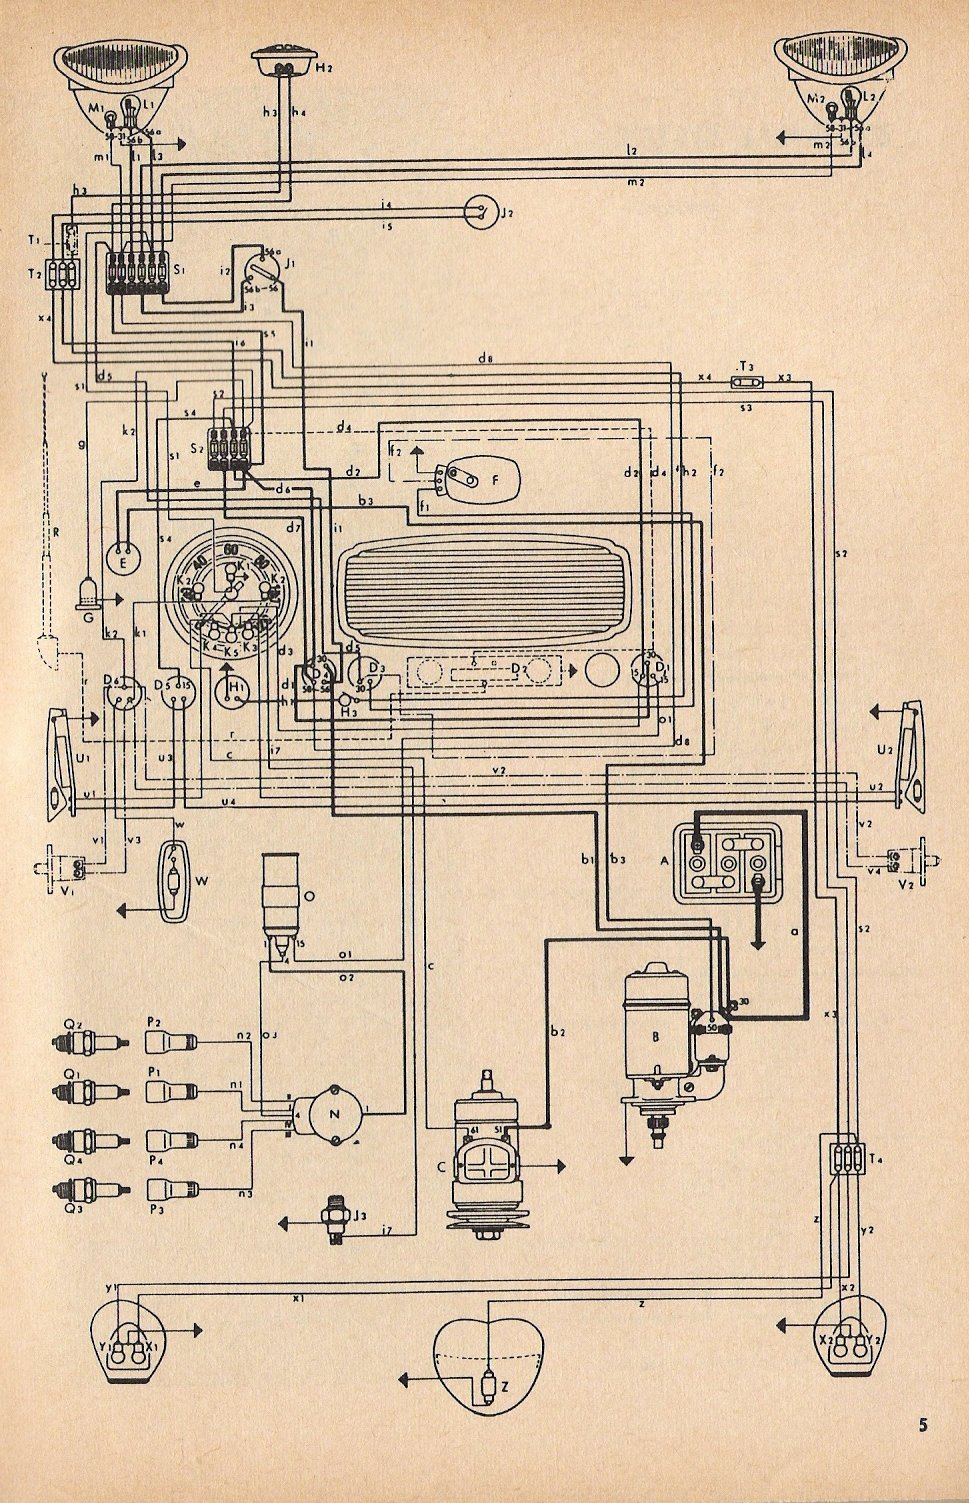 1974 Vw Wiring Diagram - WIRE Center • Wiring Diagram For Volkswagen Thing on voltage regulator wiring diagram, 1973 volkswagen clutch, vw beetle wiring diagram, 1973 volkswagen ignition coil, 1972 volkswagen wiring diagram, vw engine wiring diagram, 1973 volkswagen voltage regulator, 1973 volkswagen parts, 1973 volkswagen heater diagram,